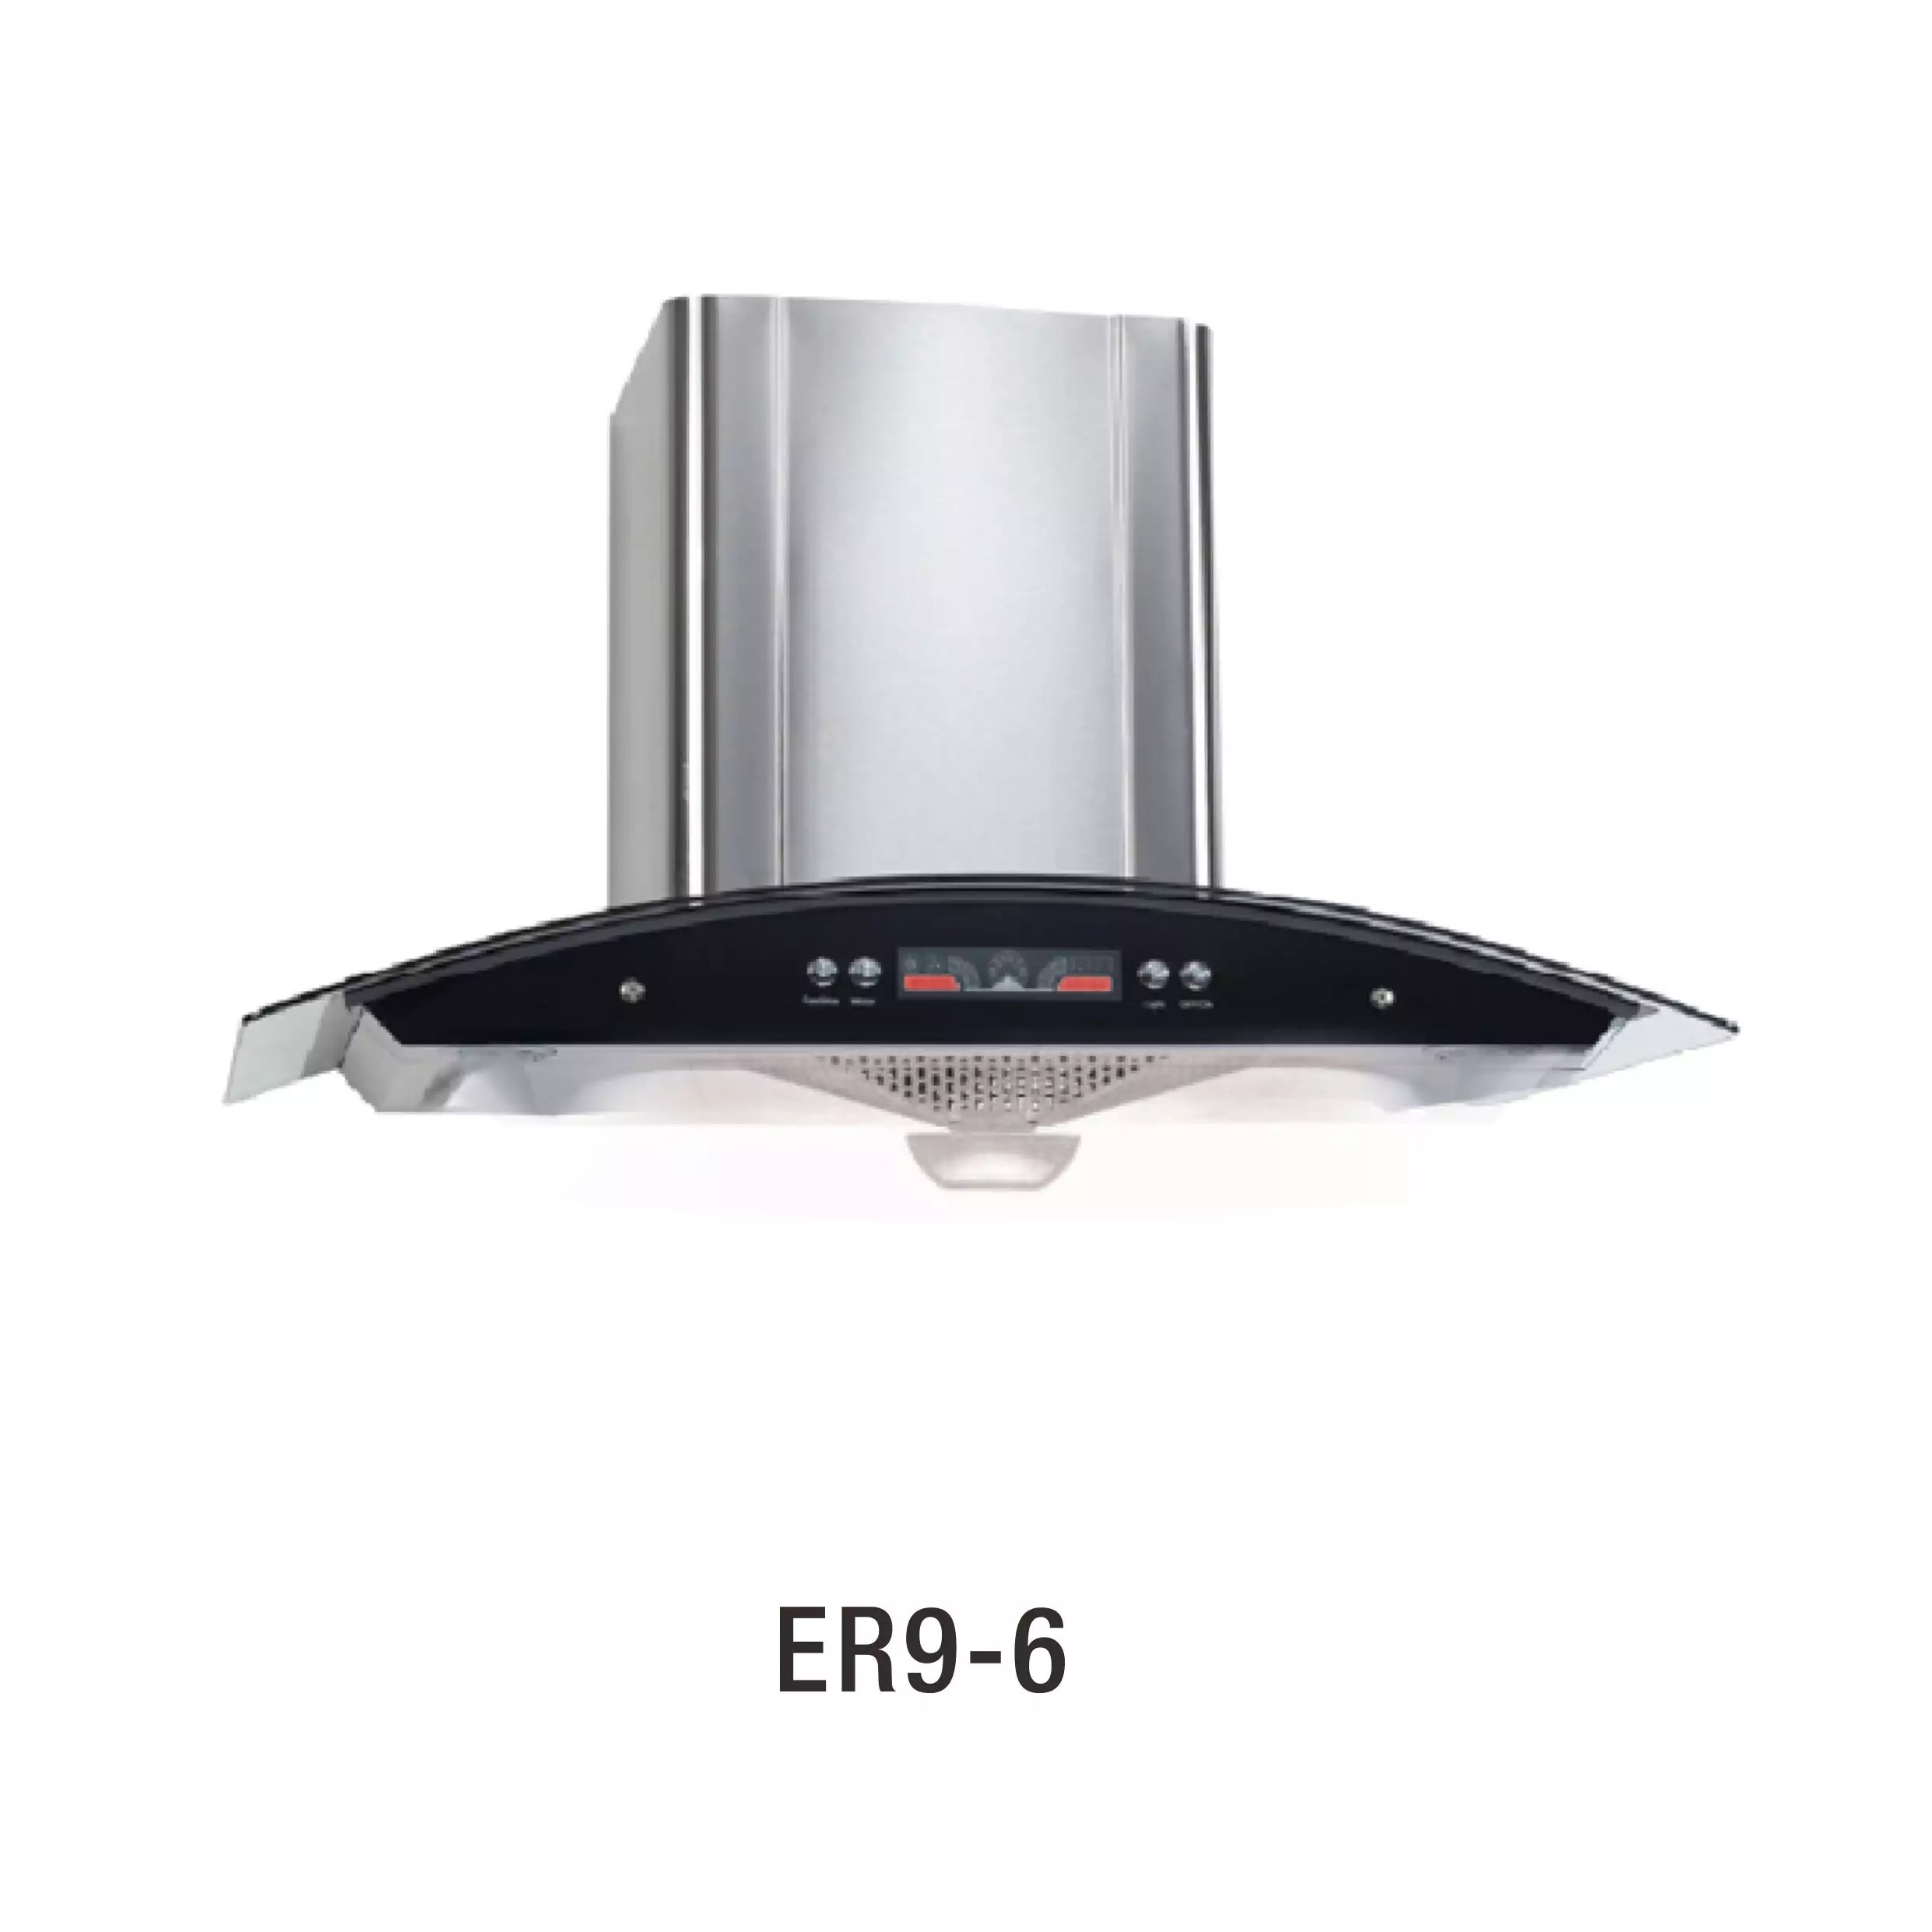 china gas cooker hood china gas cooker hood manufacturers and suppliers on alibaba com